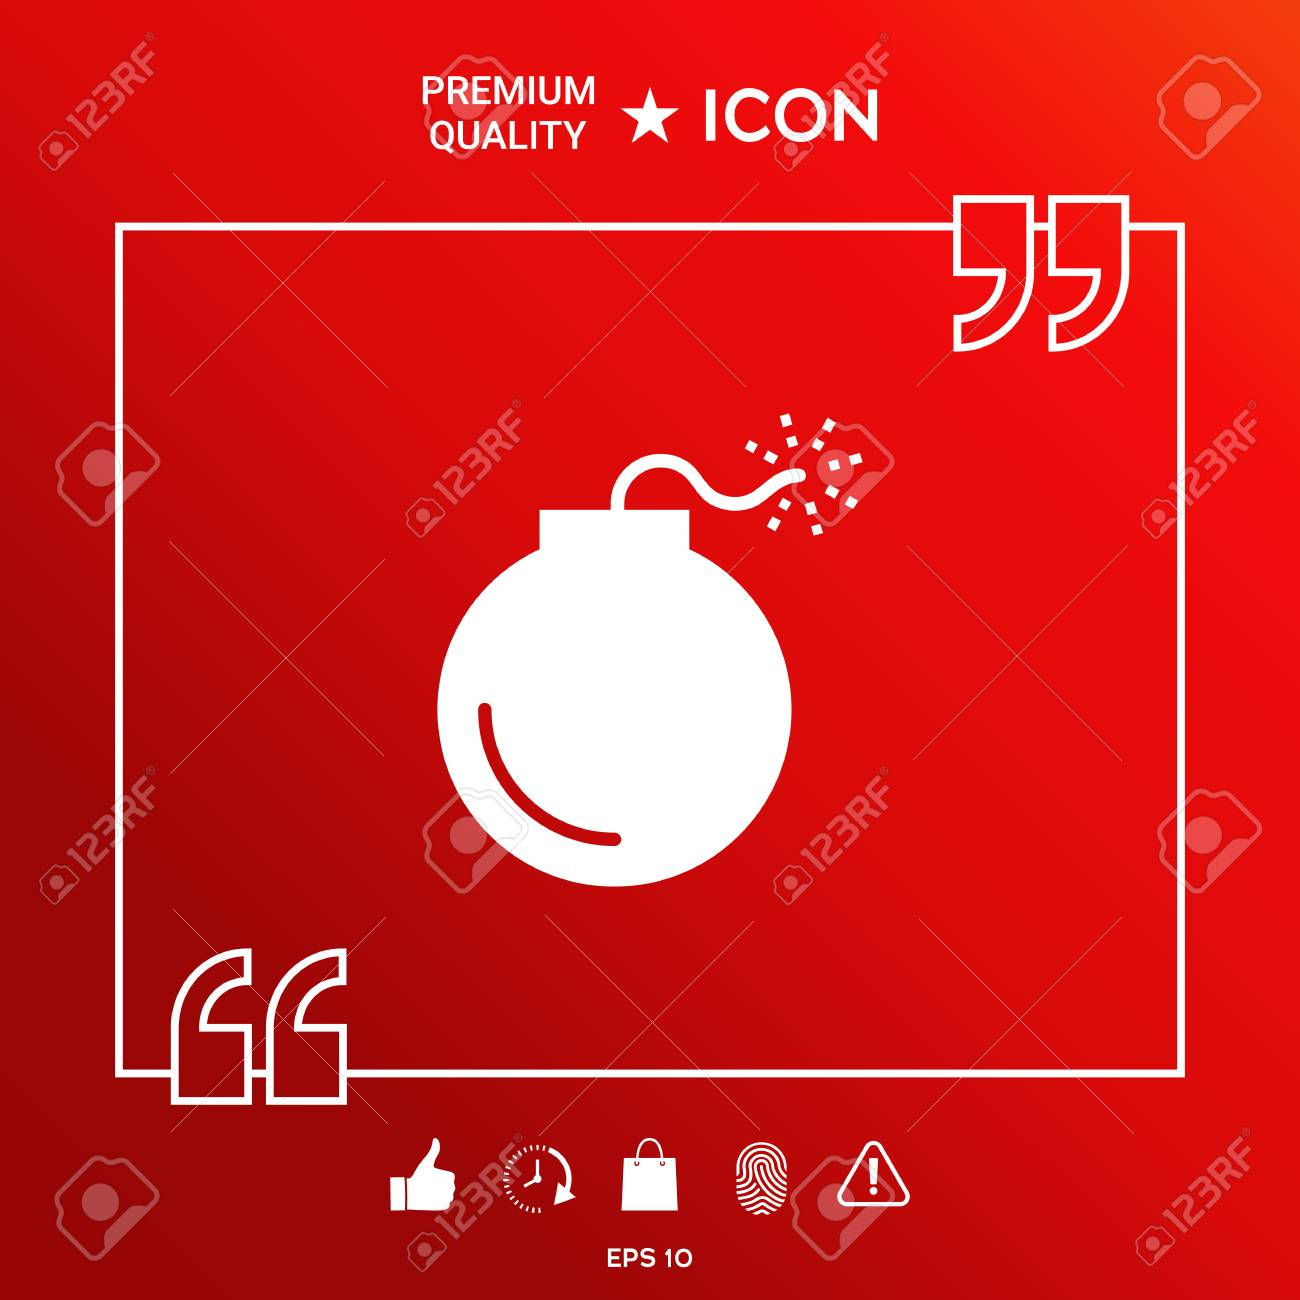 Bomb Symbol Icon In White Border On Red Background With Web Icon